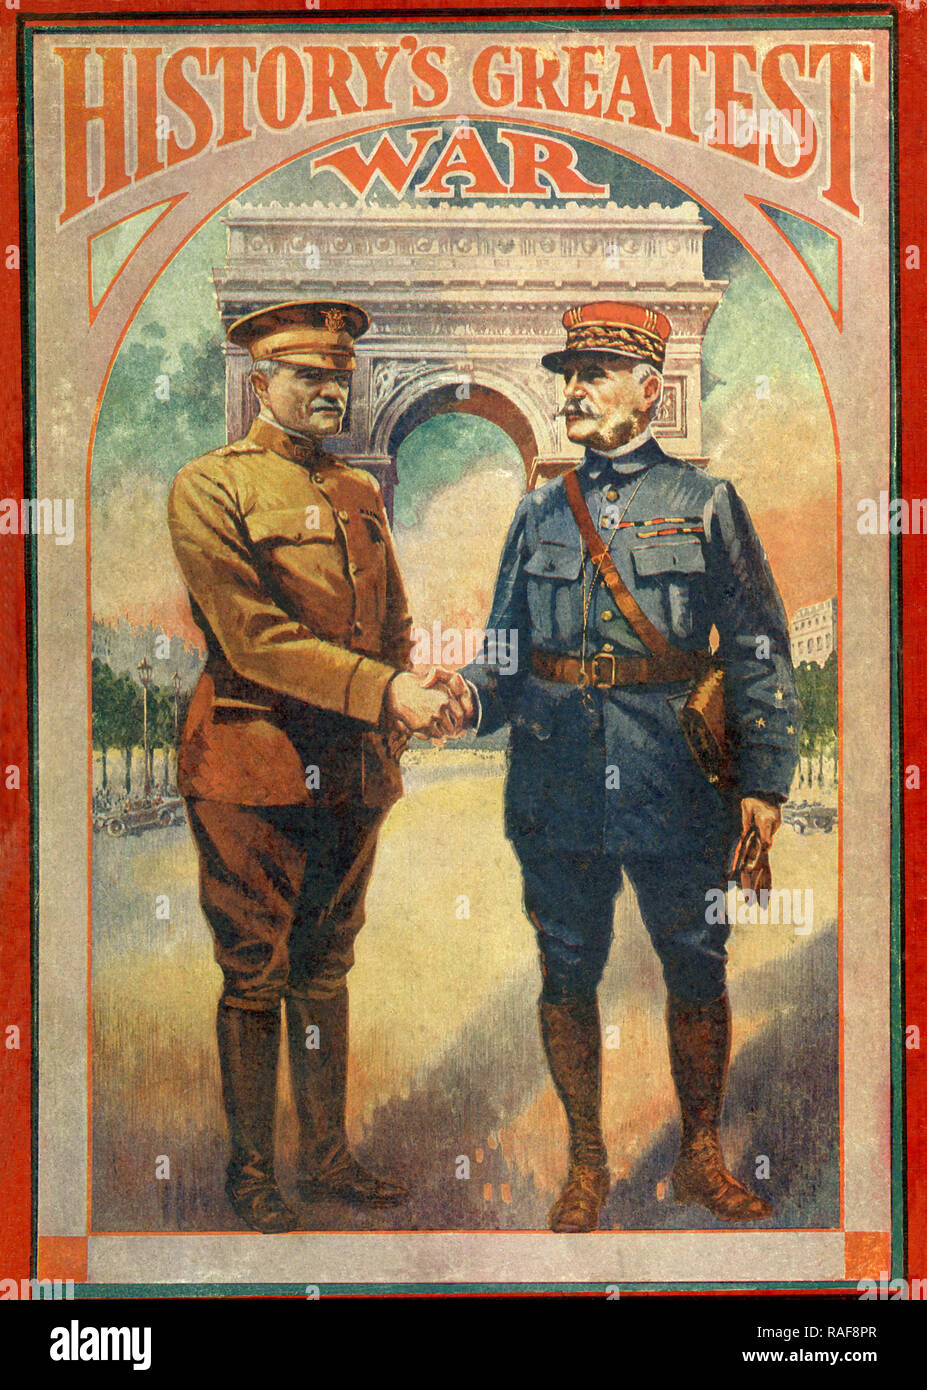 The title refers to World War I. The figures are the British commander General Douglas Haig and the French commander General Ferdinand Foch. Haig commanded the British Expeditionary Force on the Western front from 1915 to the end of the war. Foch served as the Supreme Allied Commander during the war. Behind them in this illustration is the Arc de Triomphe in Paris. - Stock Image